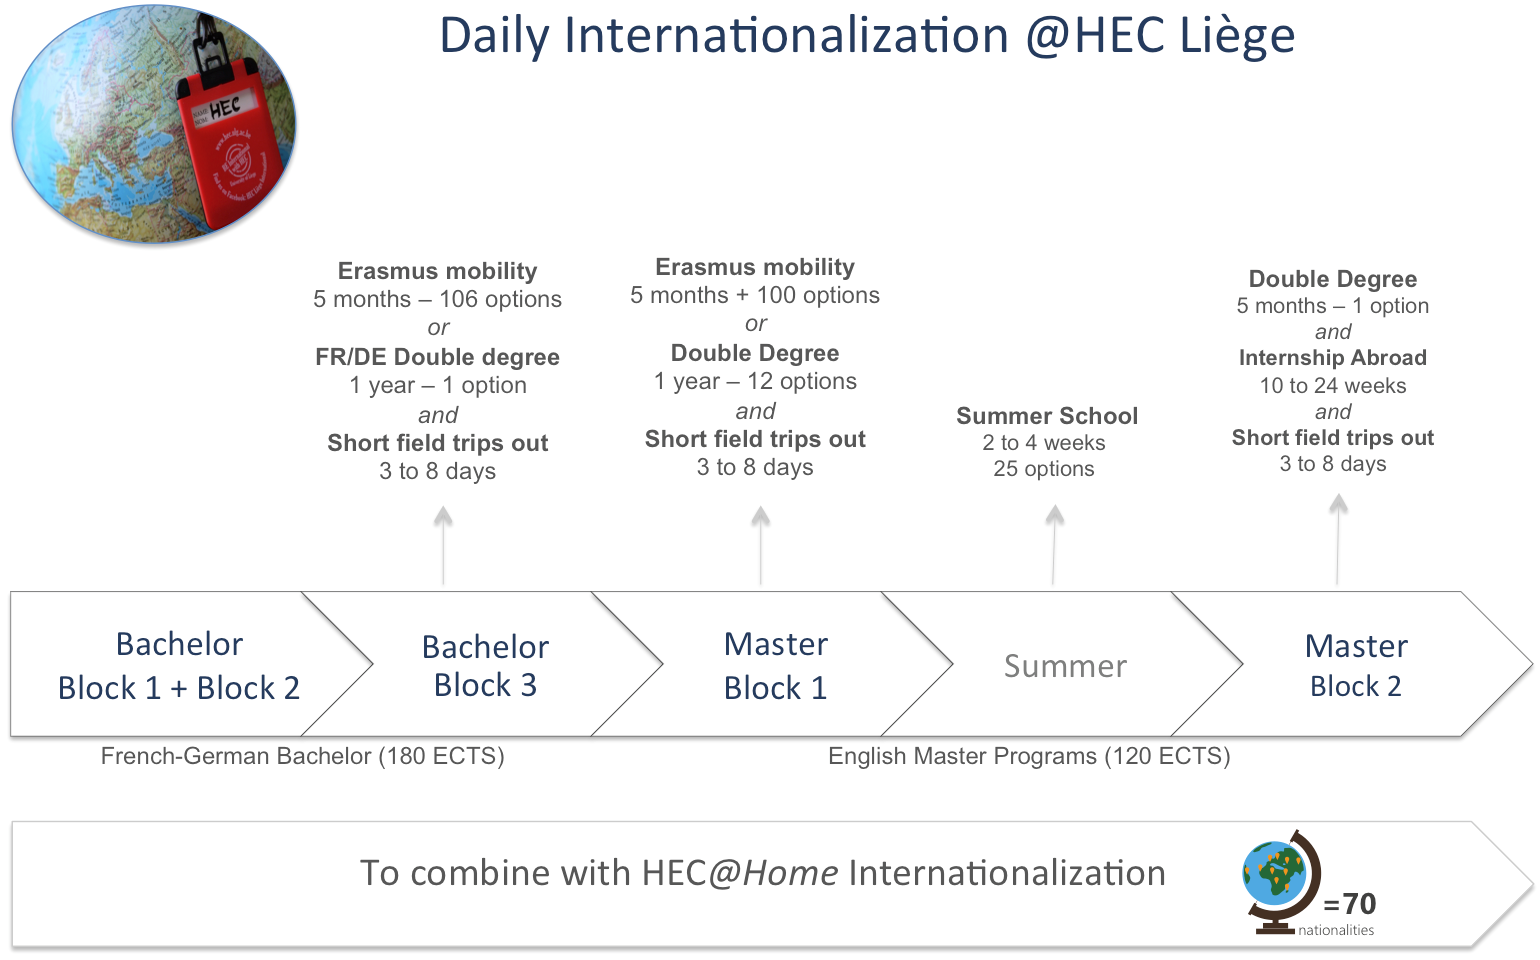 HEC Liege international